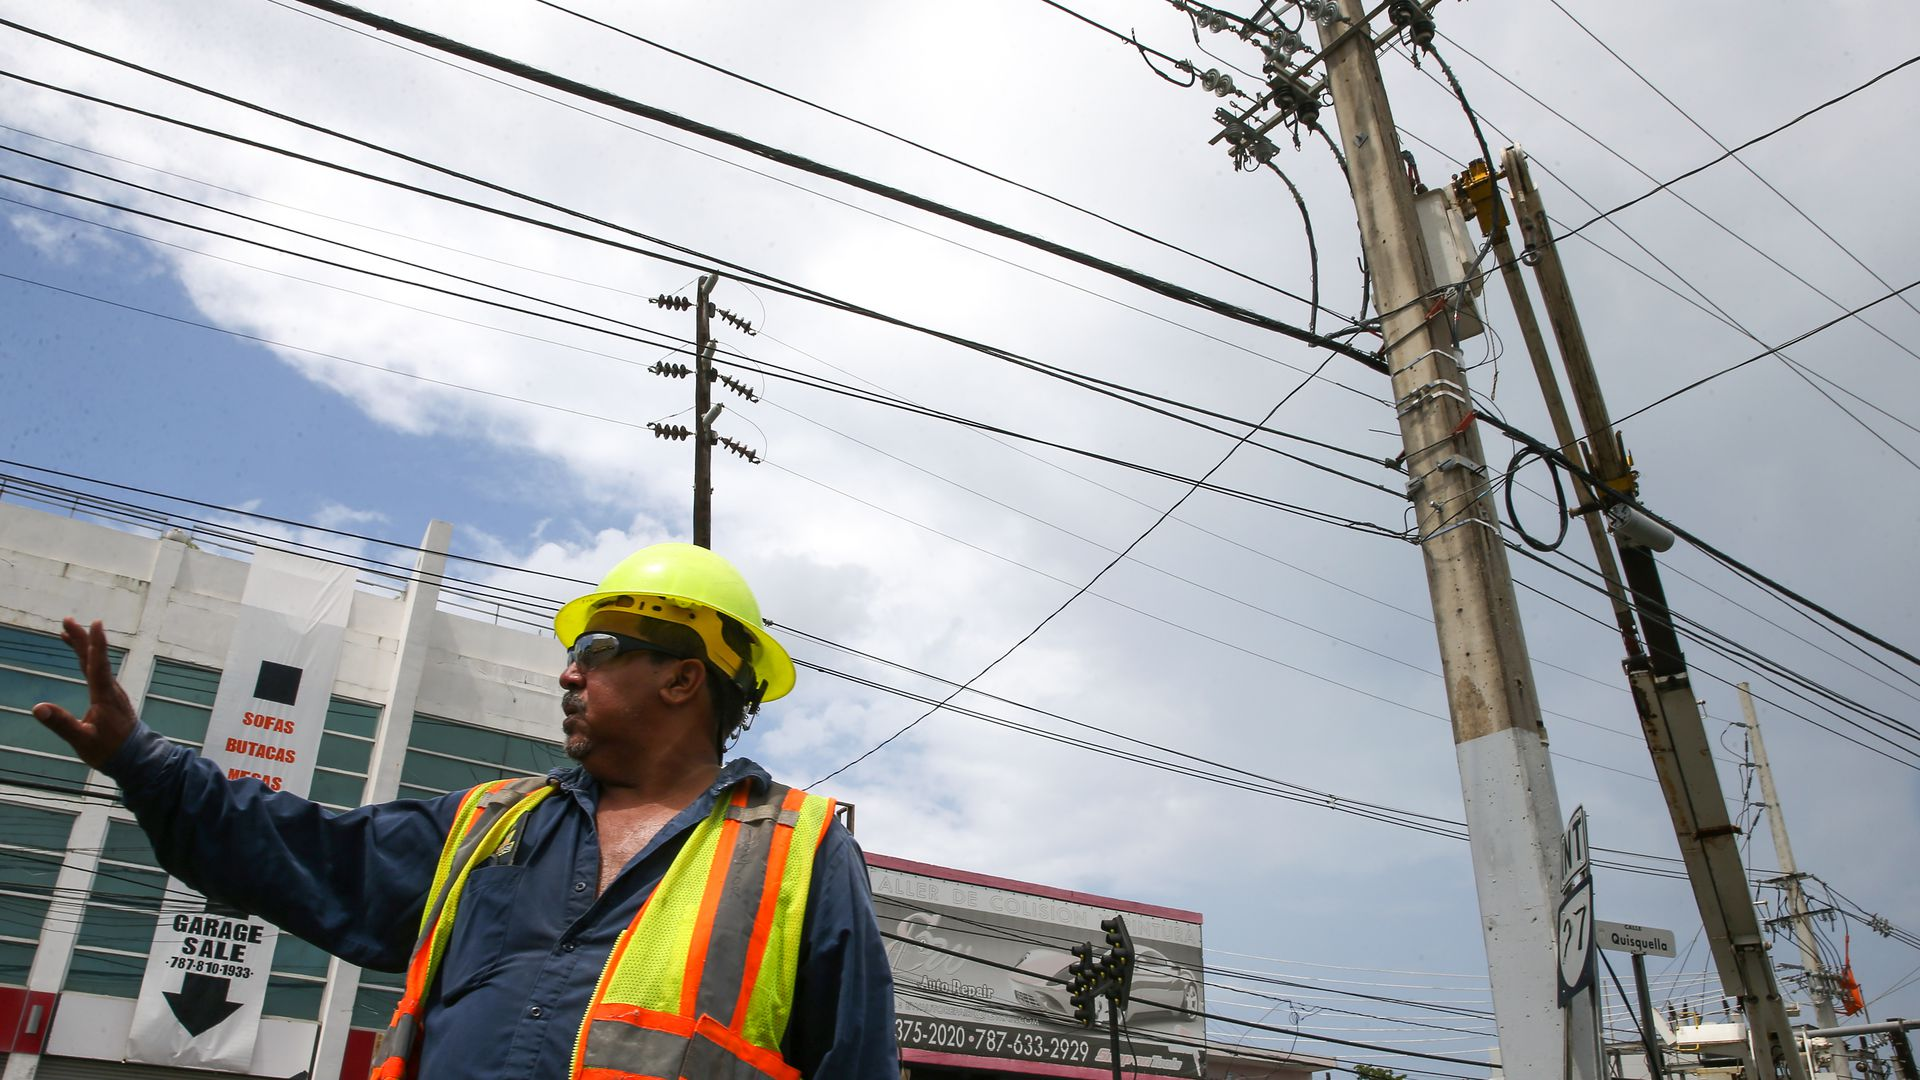 Puerto Rico's workers working on power lines